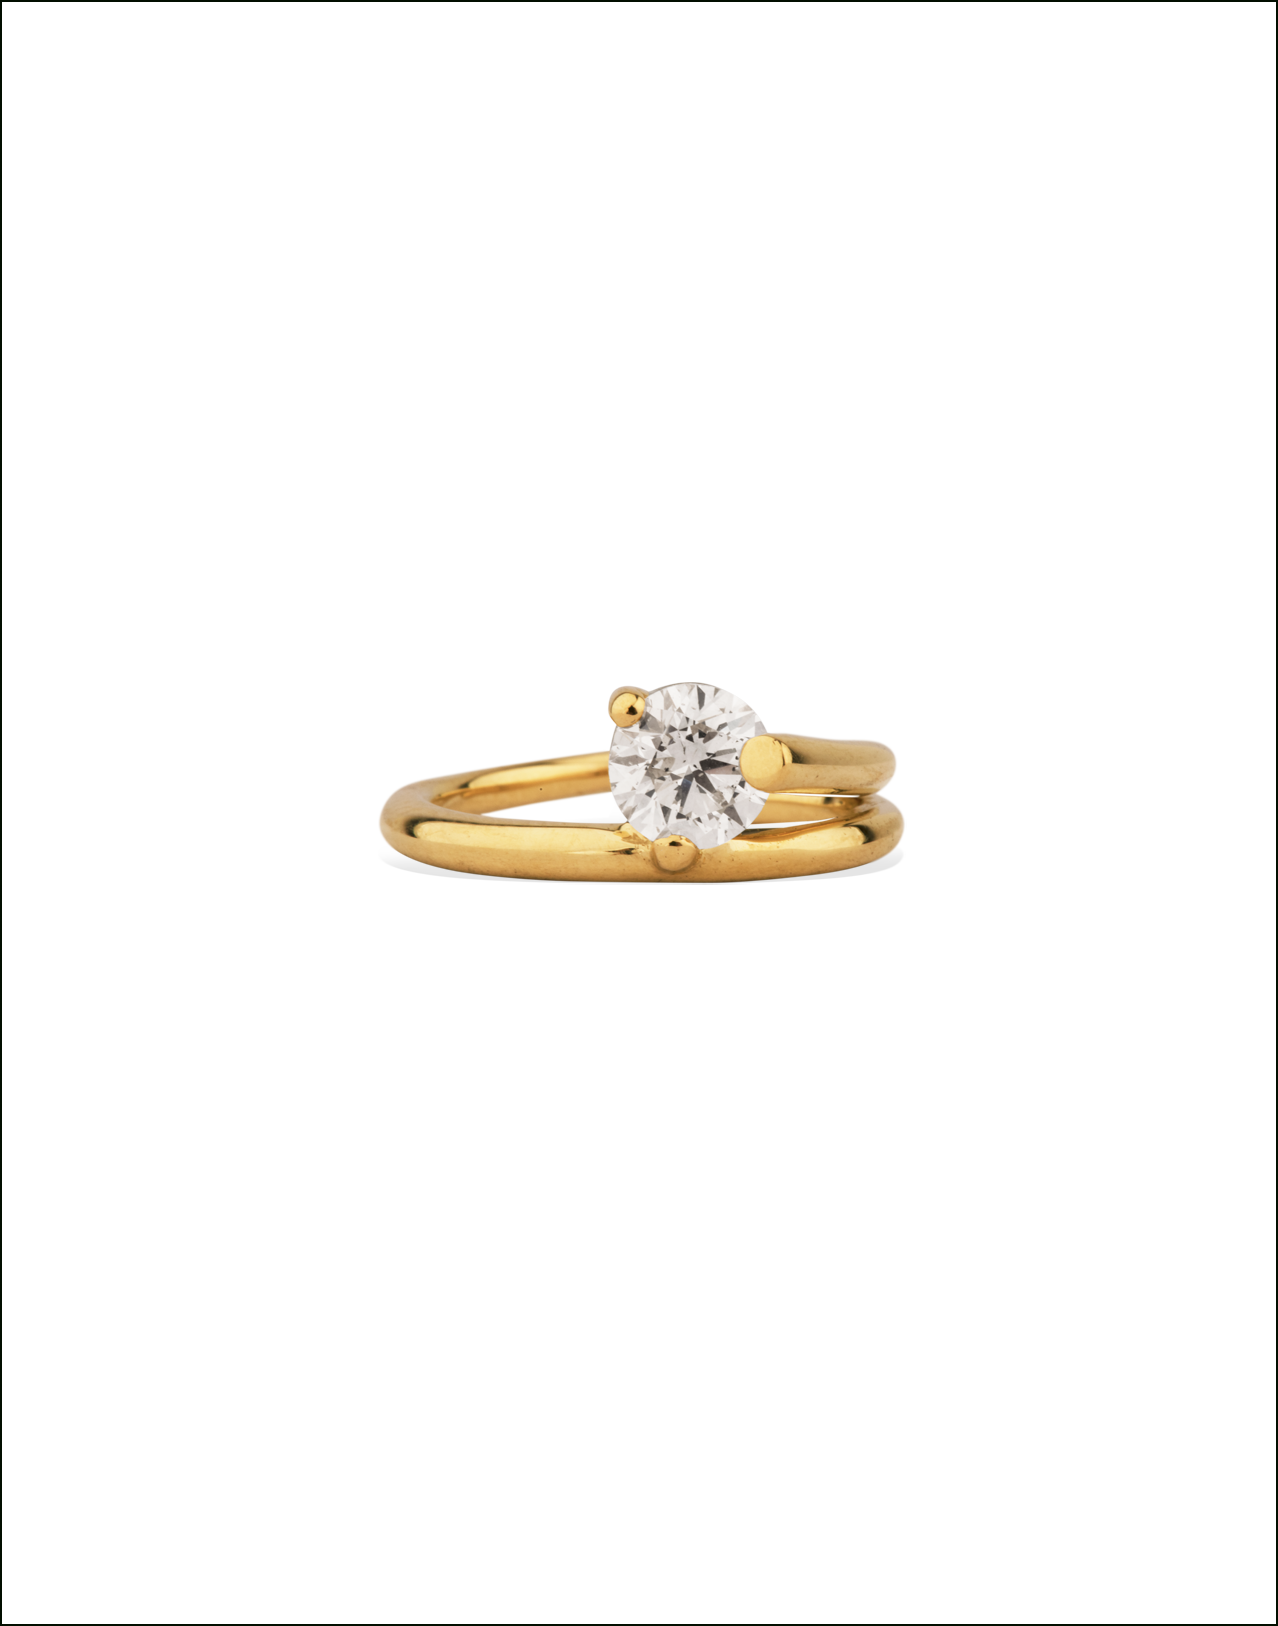 Completedworks-Subverted-Flower-Bridal-Ring-2-1.png